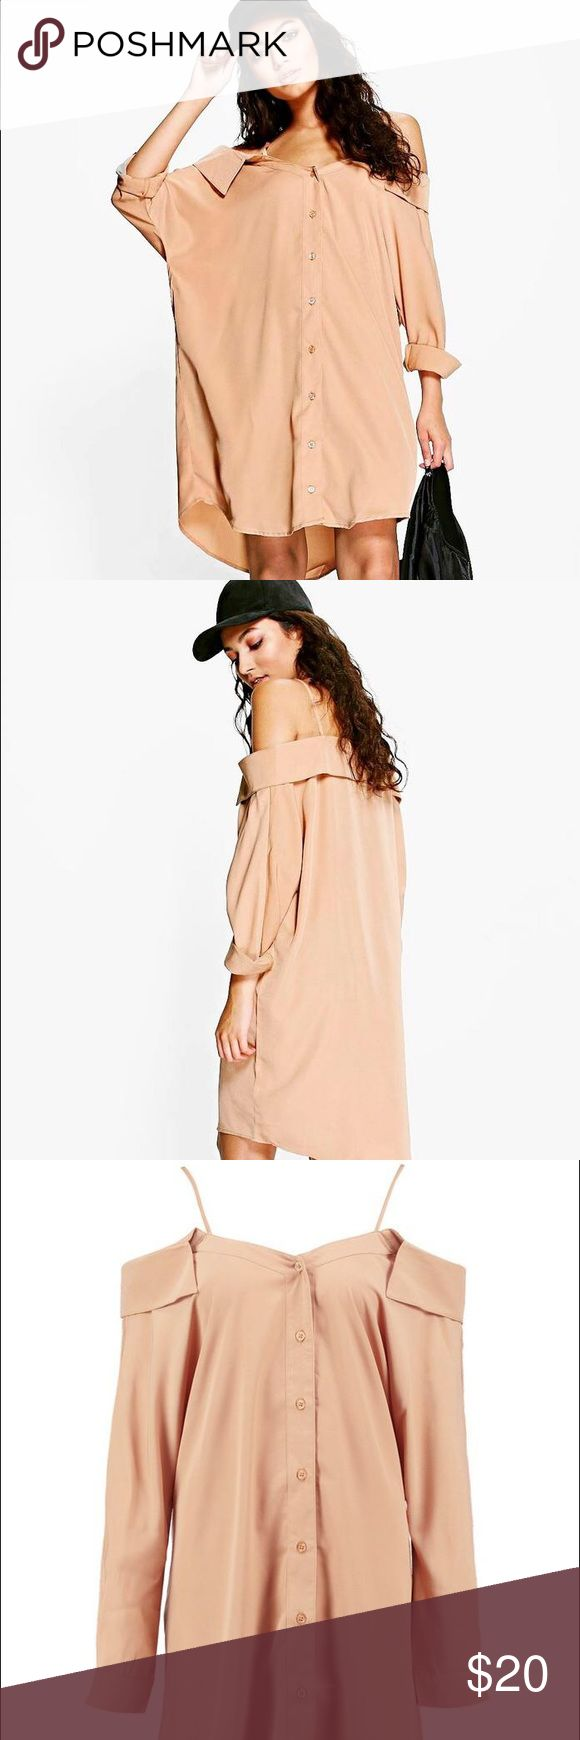 "Cold Shoulder Collar Shirt Dress Super cute tan ""street chic"" dress that was a little too big for me when it came in the mail 🙃 STILL IN PACKAGING WITH TAGS ATTACHED! Boohoo Dresses Midi"